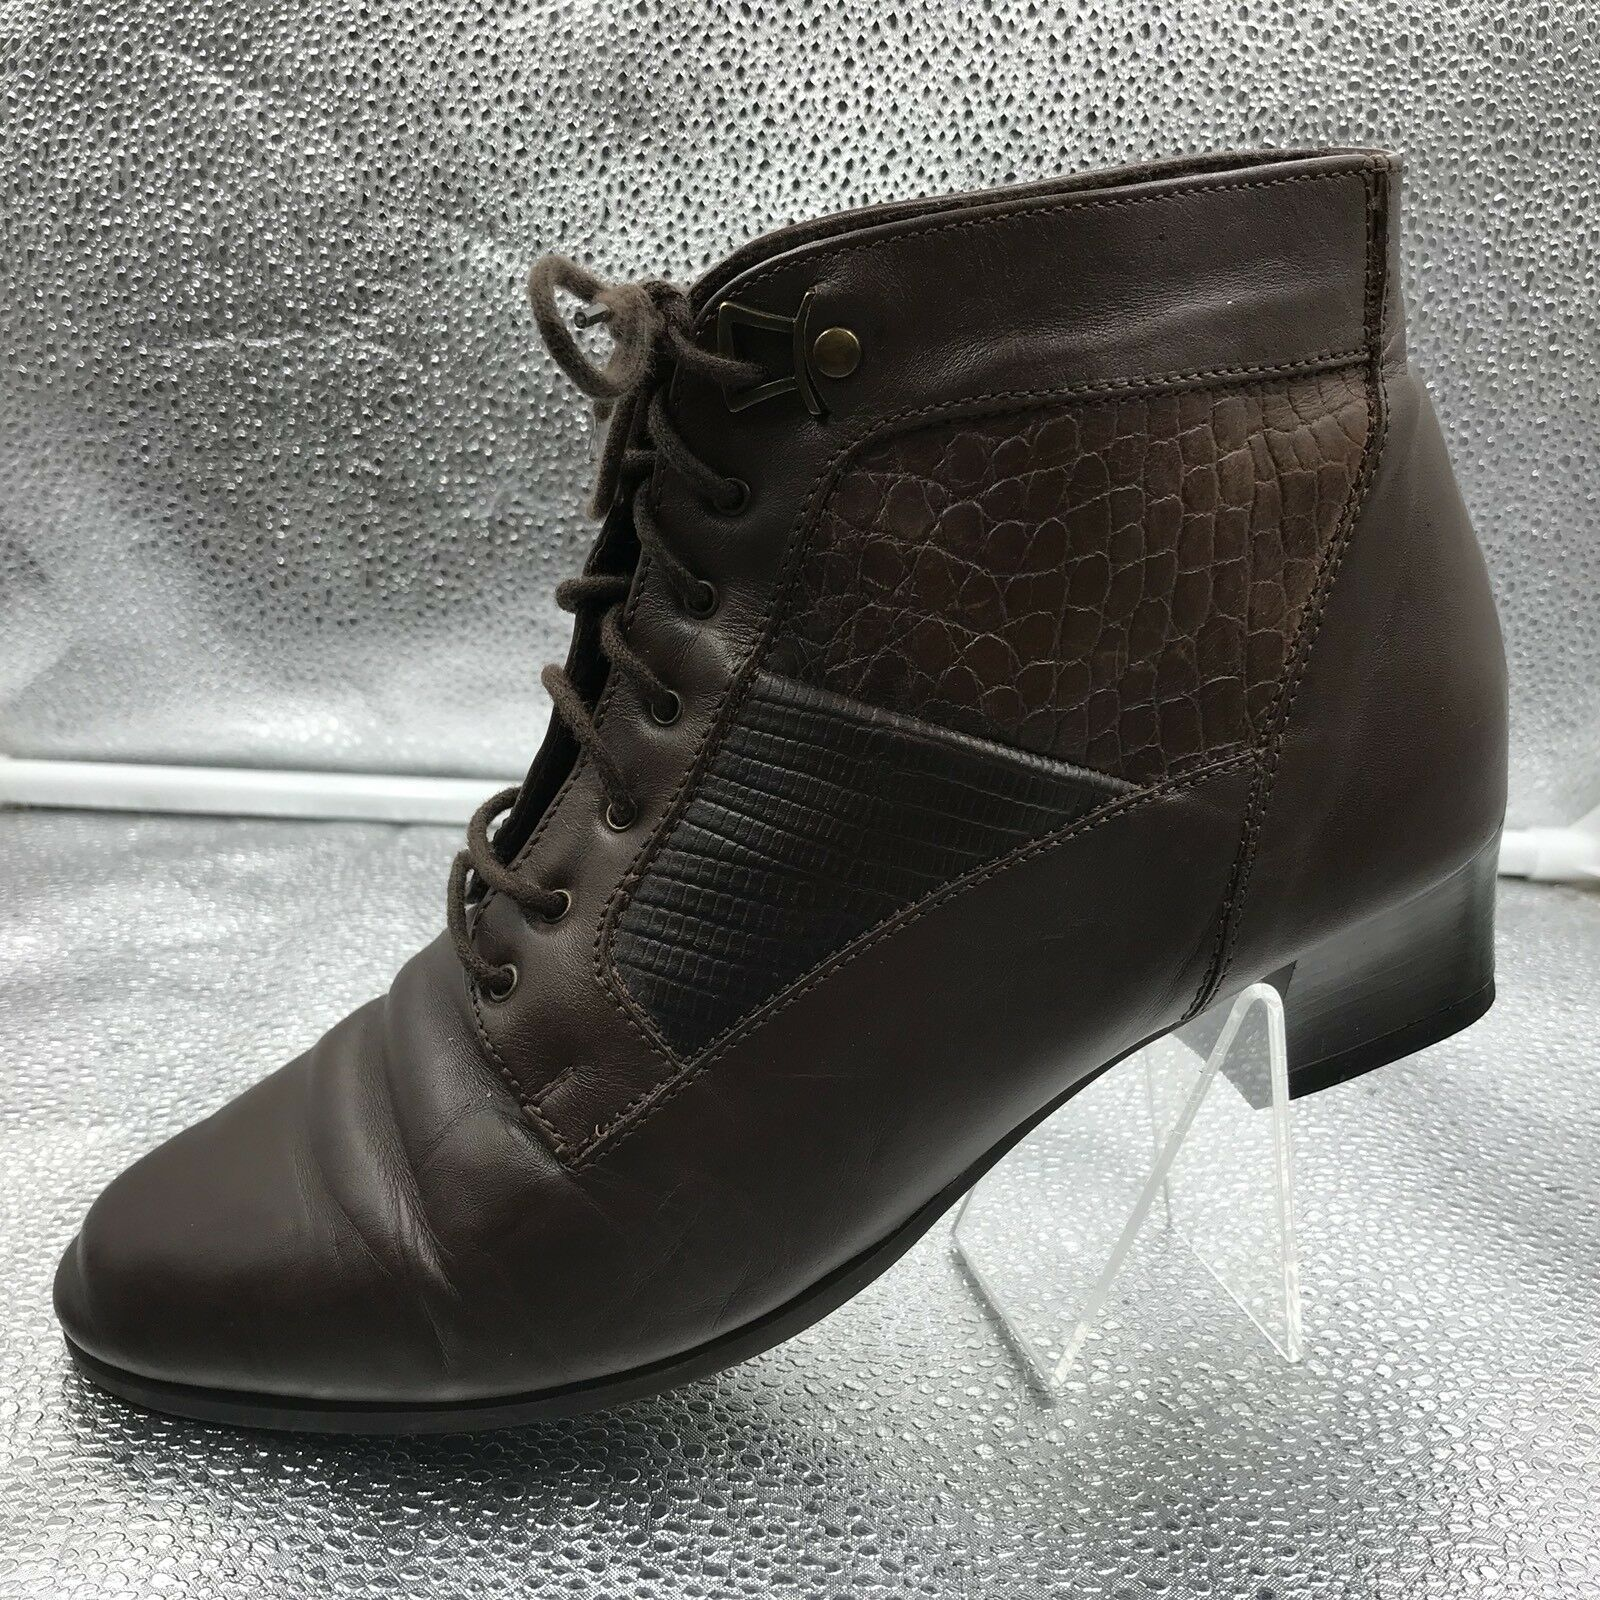 Clarks braun damen Leather Sz 5.5 38.5 Victoriana Lace Up Ankle Stiefel